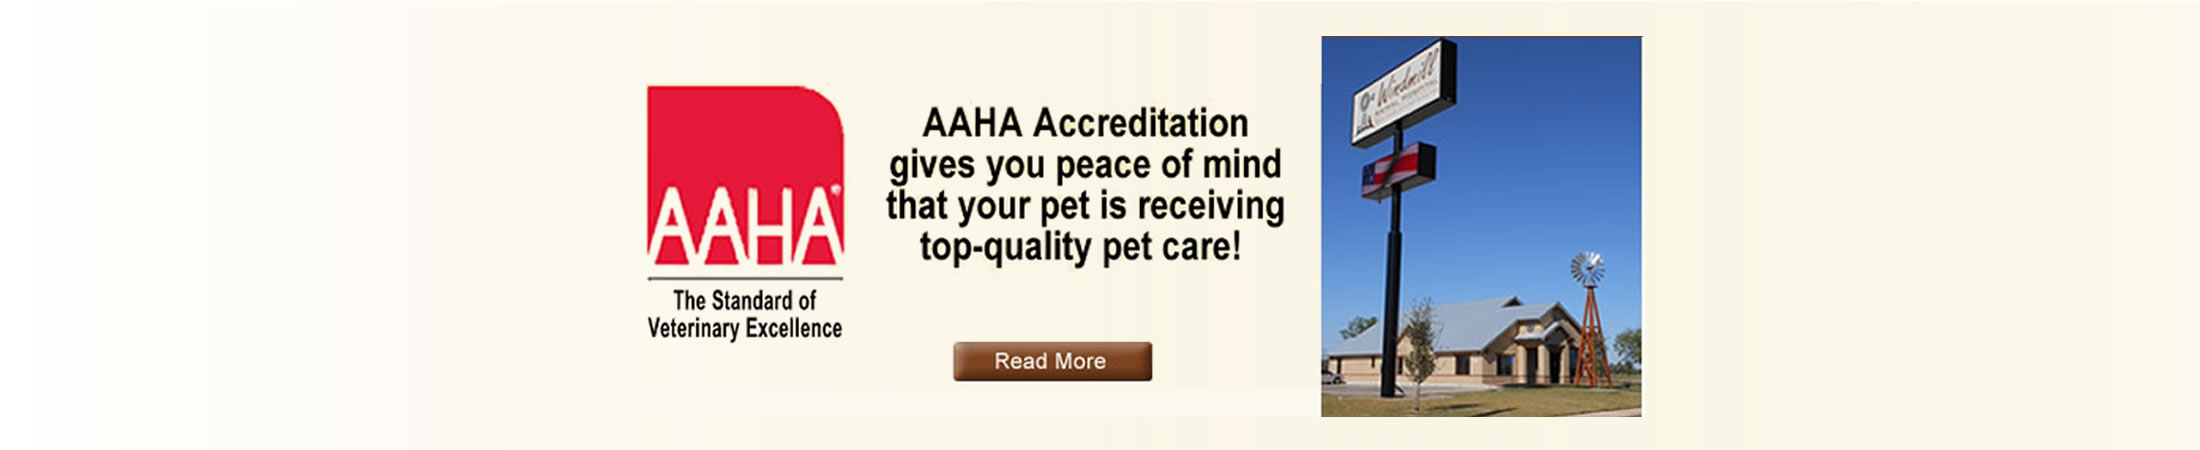 Windmill Animal Hospital is AAHA accredited